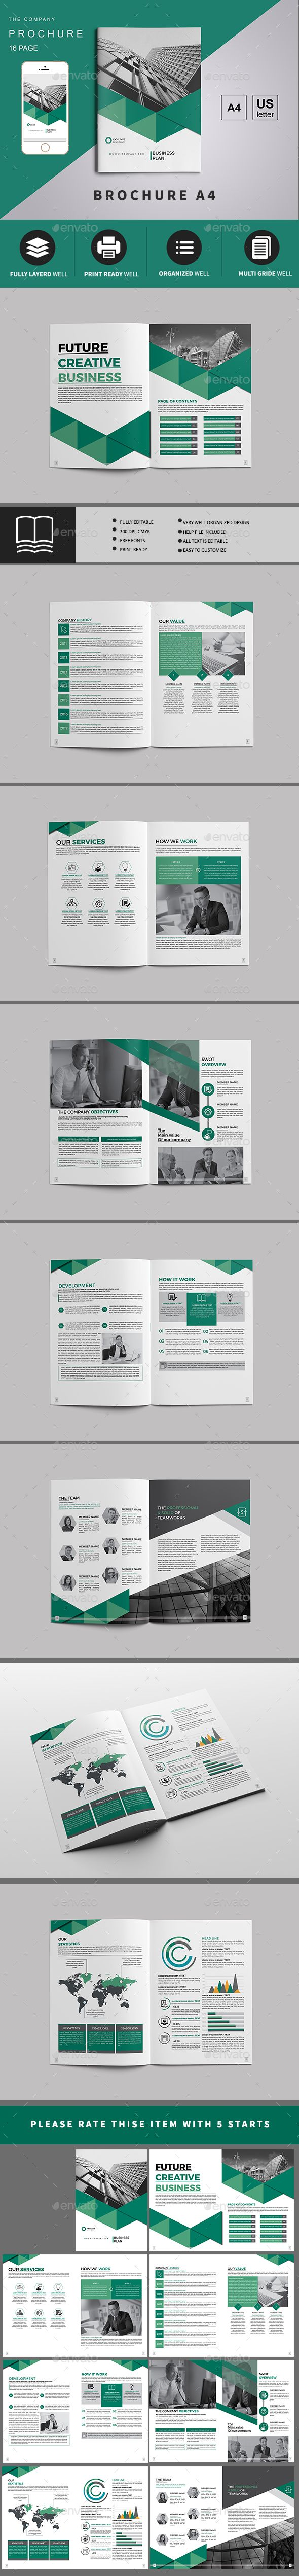 BROCHURE 16 PAGE — InDesign INDD #company #psd • Download ➝ https://graphicriver.net/item/brochure-16-page/19555808?ref=pxcr